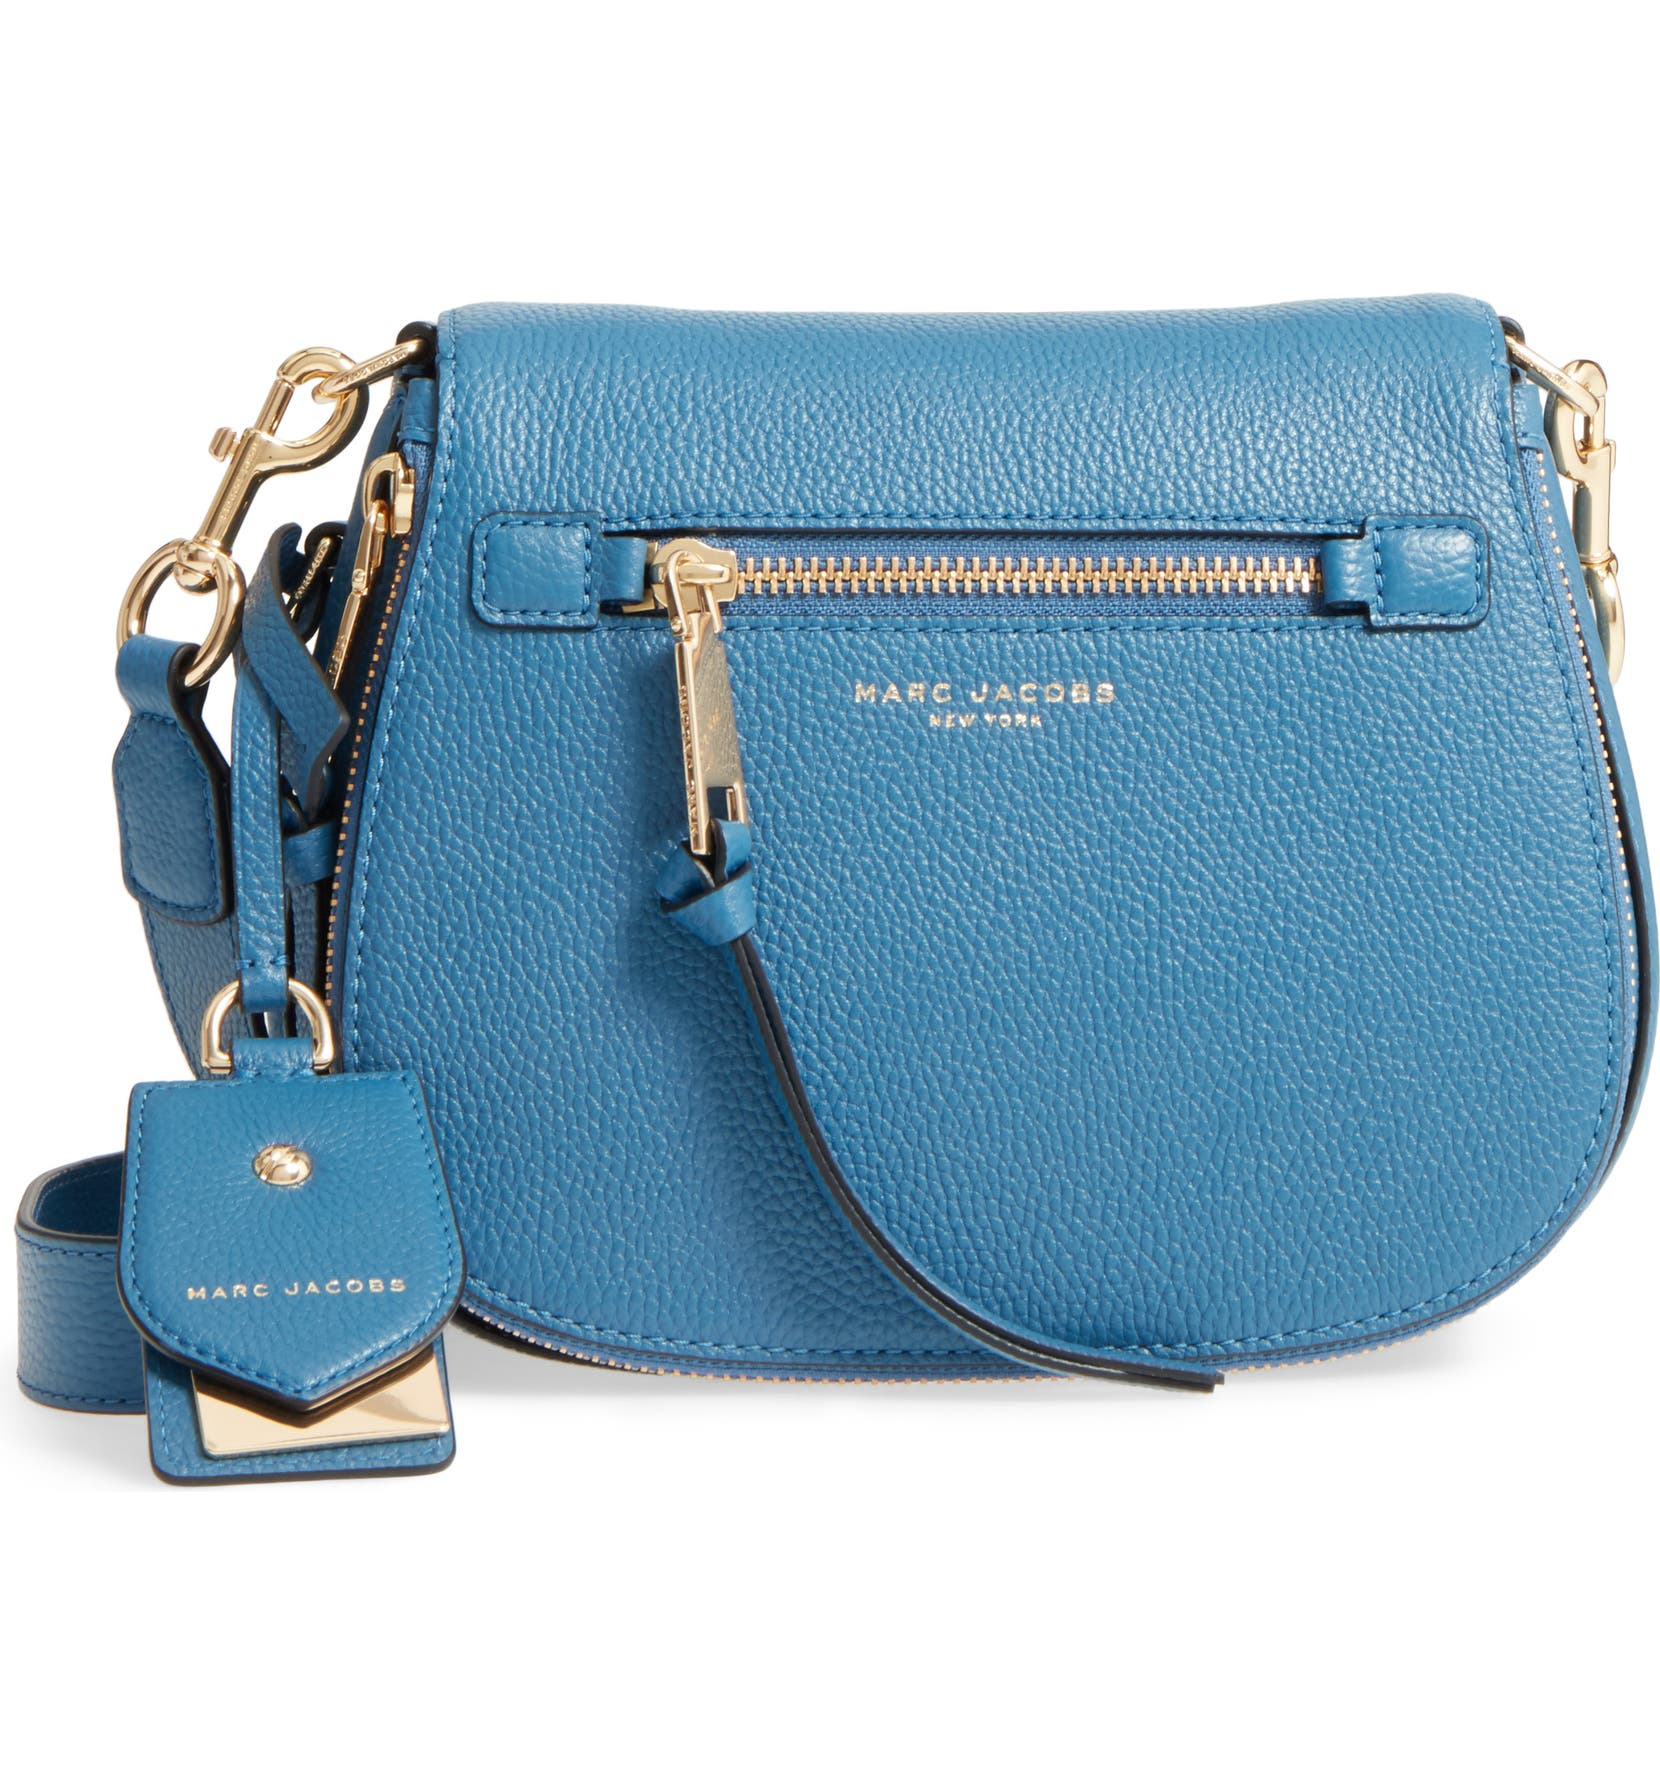 124e85406 MARC JACOBS Small Recruit Nomad Pebbled Leather Crossbody Bag | Nordstrom